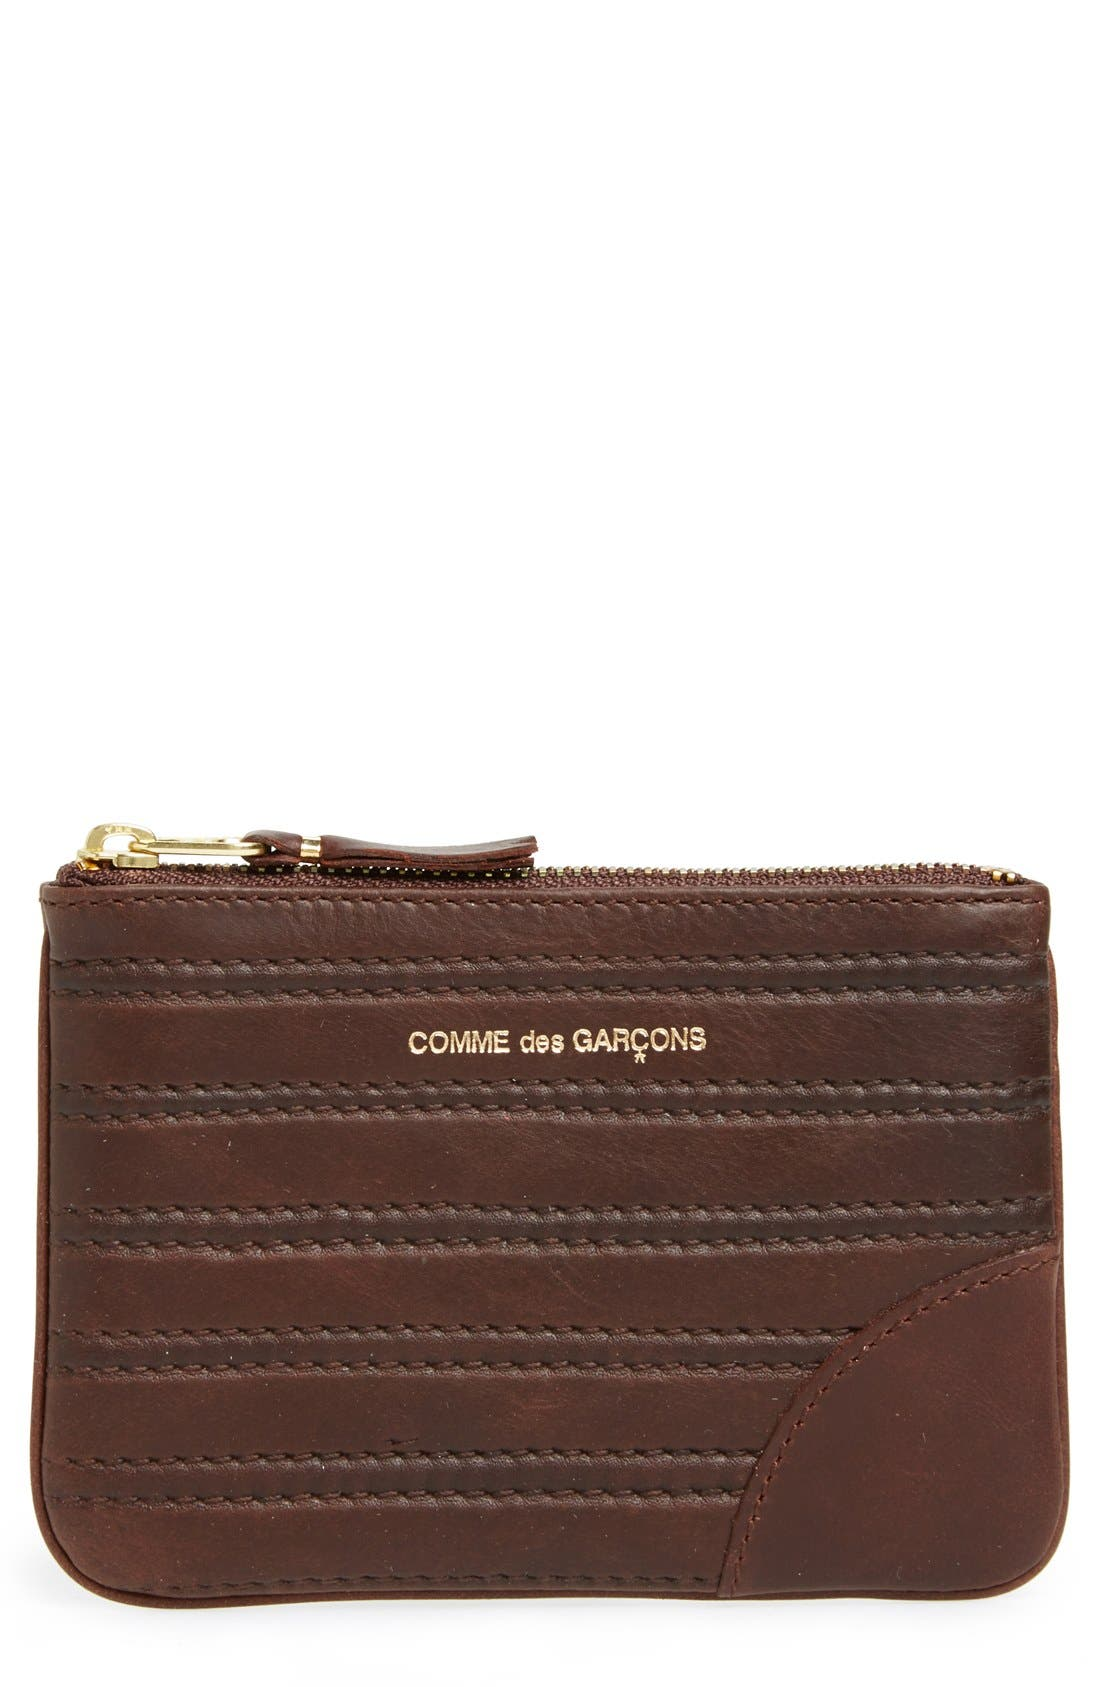 Comme des Garçons Embossed Leather Top Zip Pouch Wallet